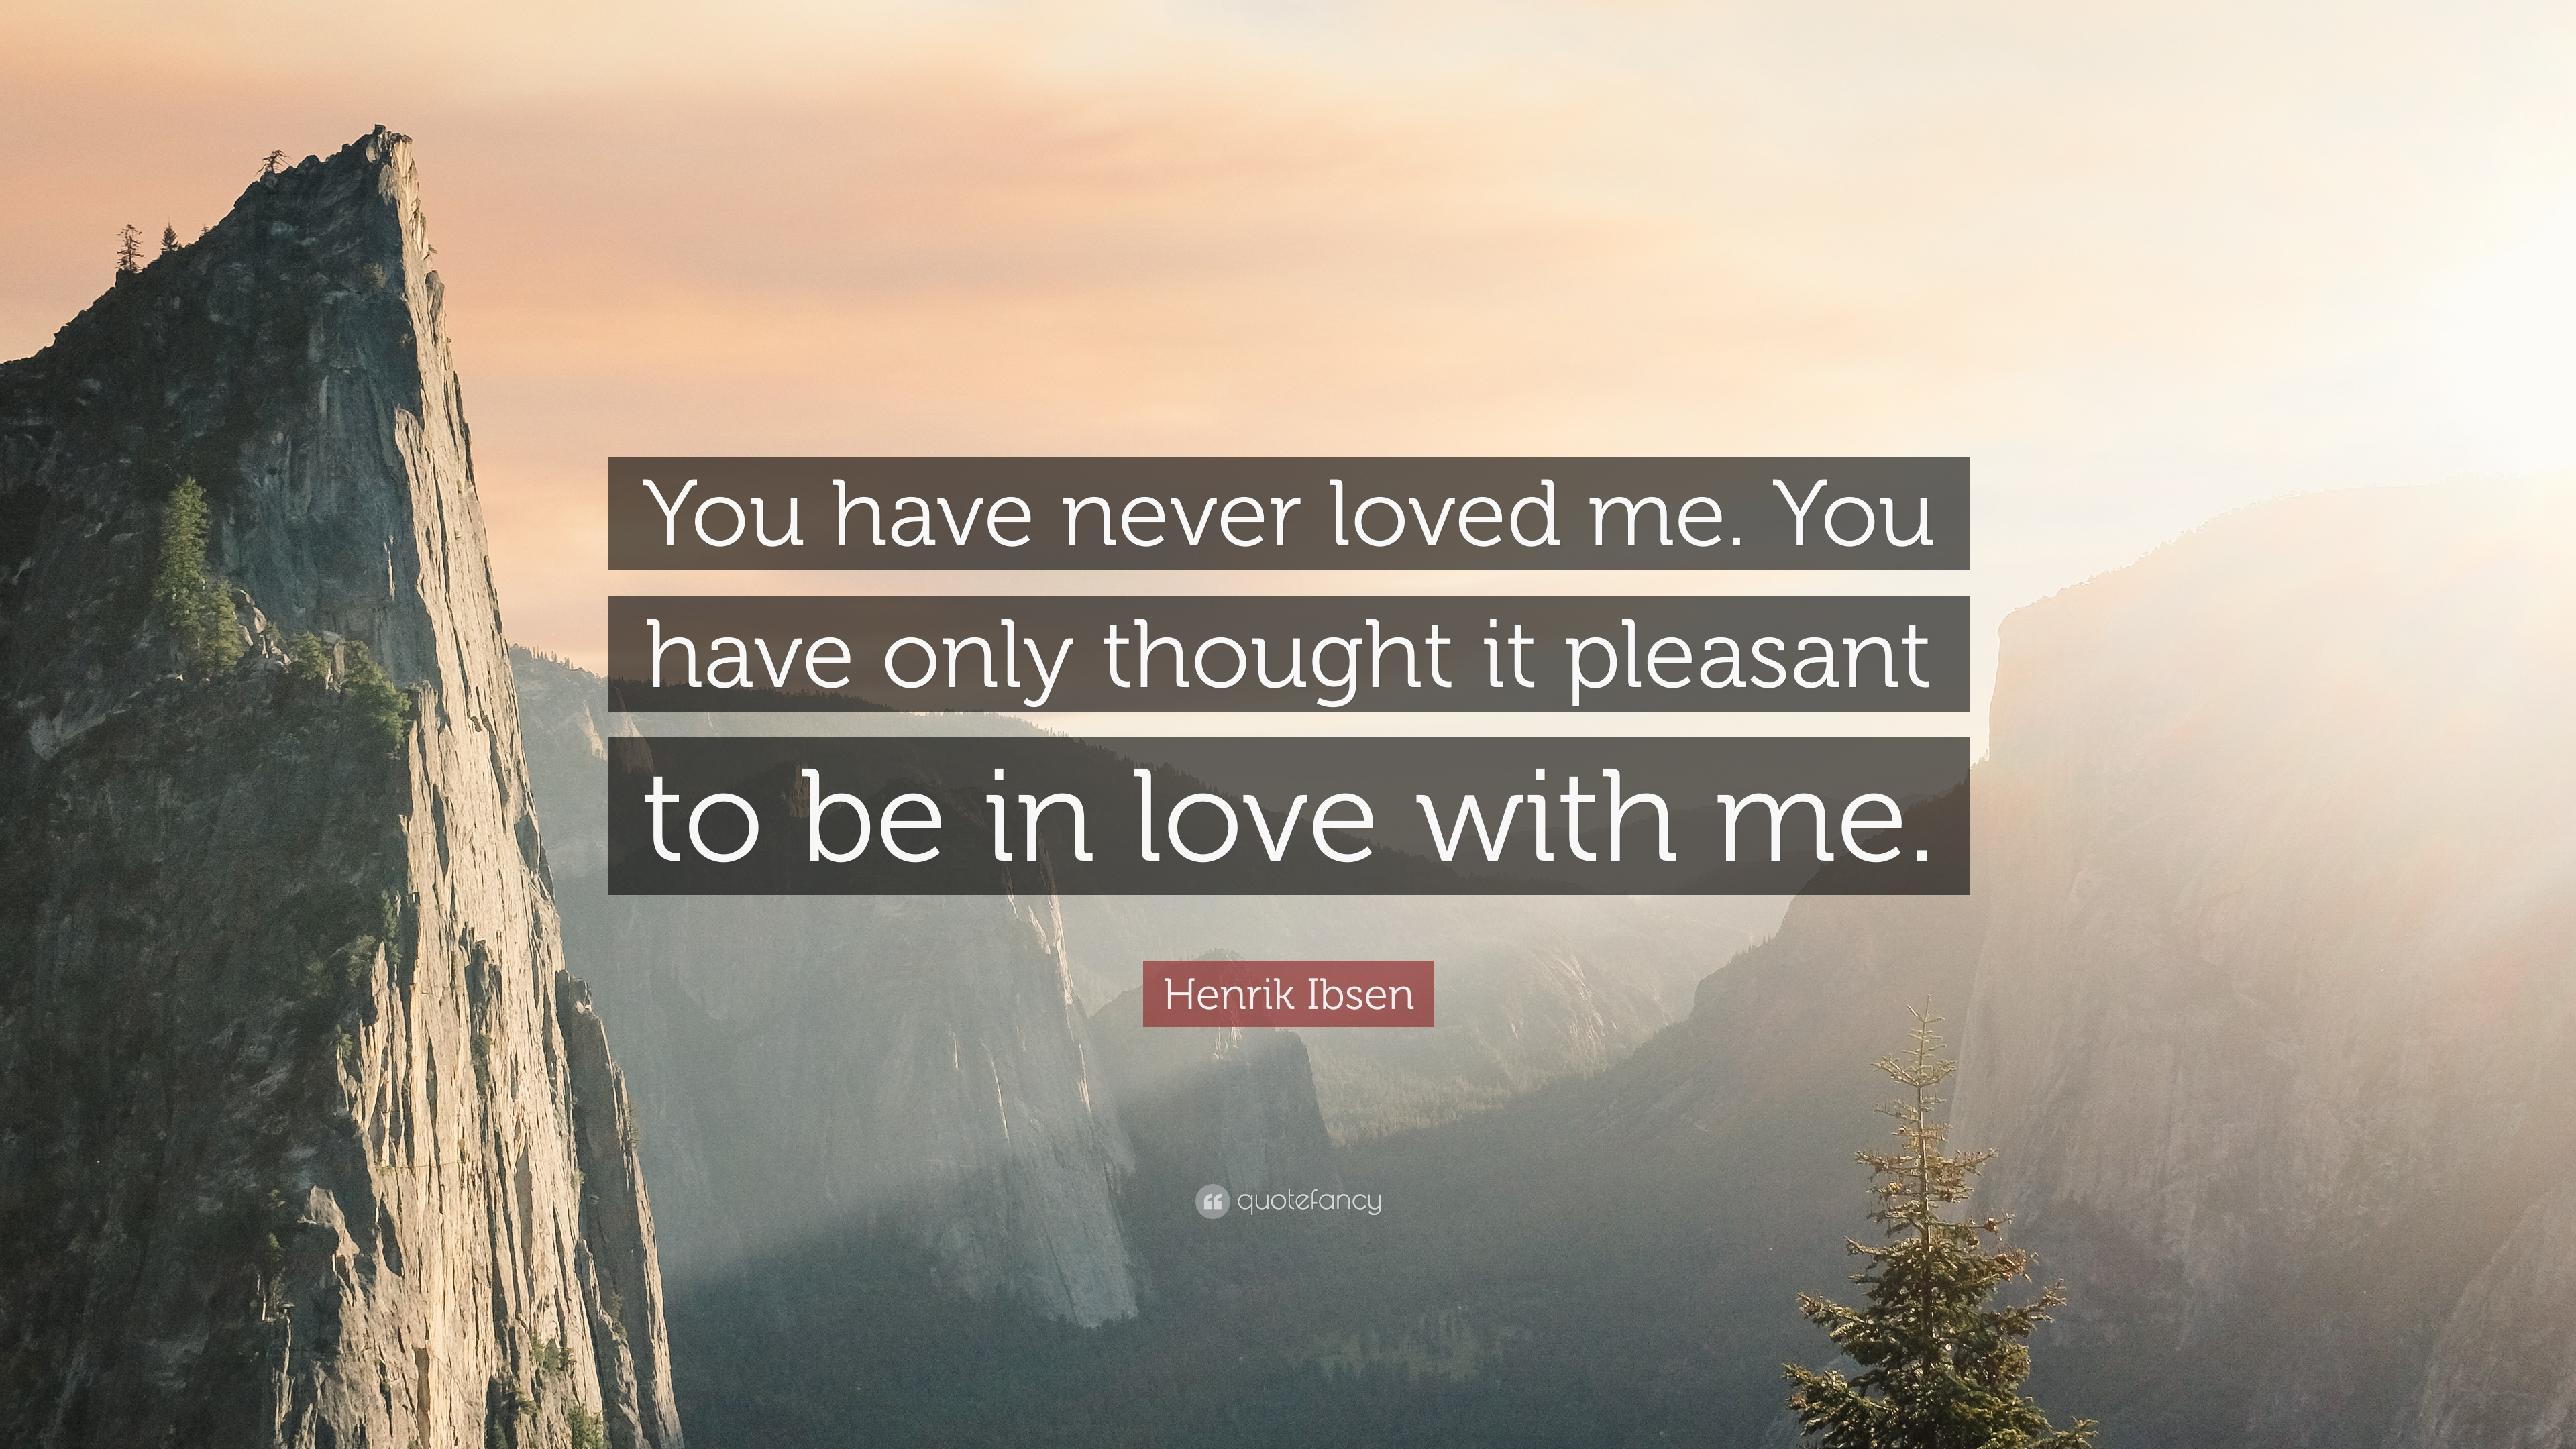 Henrik Ibsen Quote You Have Never Loved Me You Have Only Thought